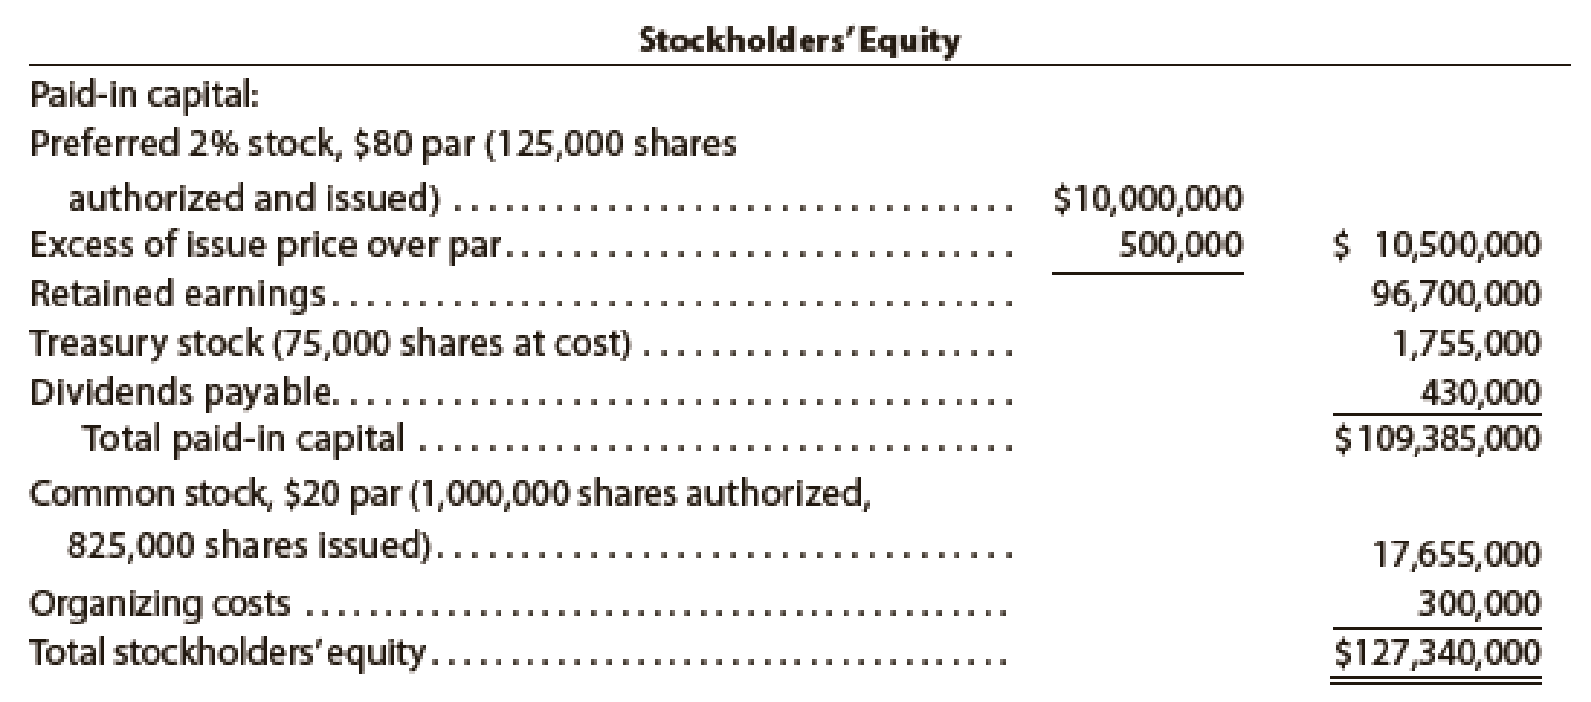 Chapter 13, Problem 21E, Stockholders Equity section of balance sheet List the errors in the following Stockholders Equity